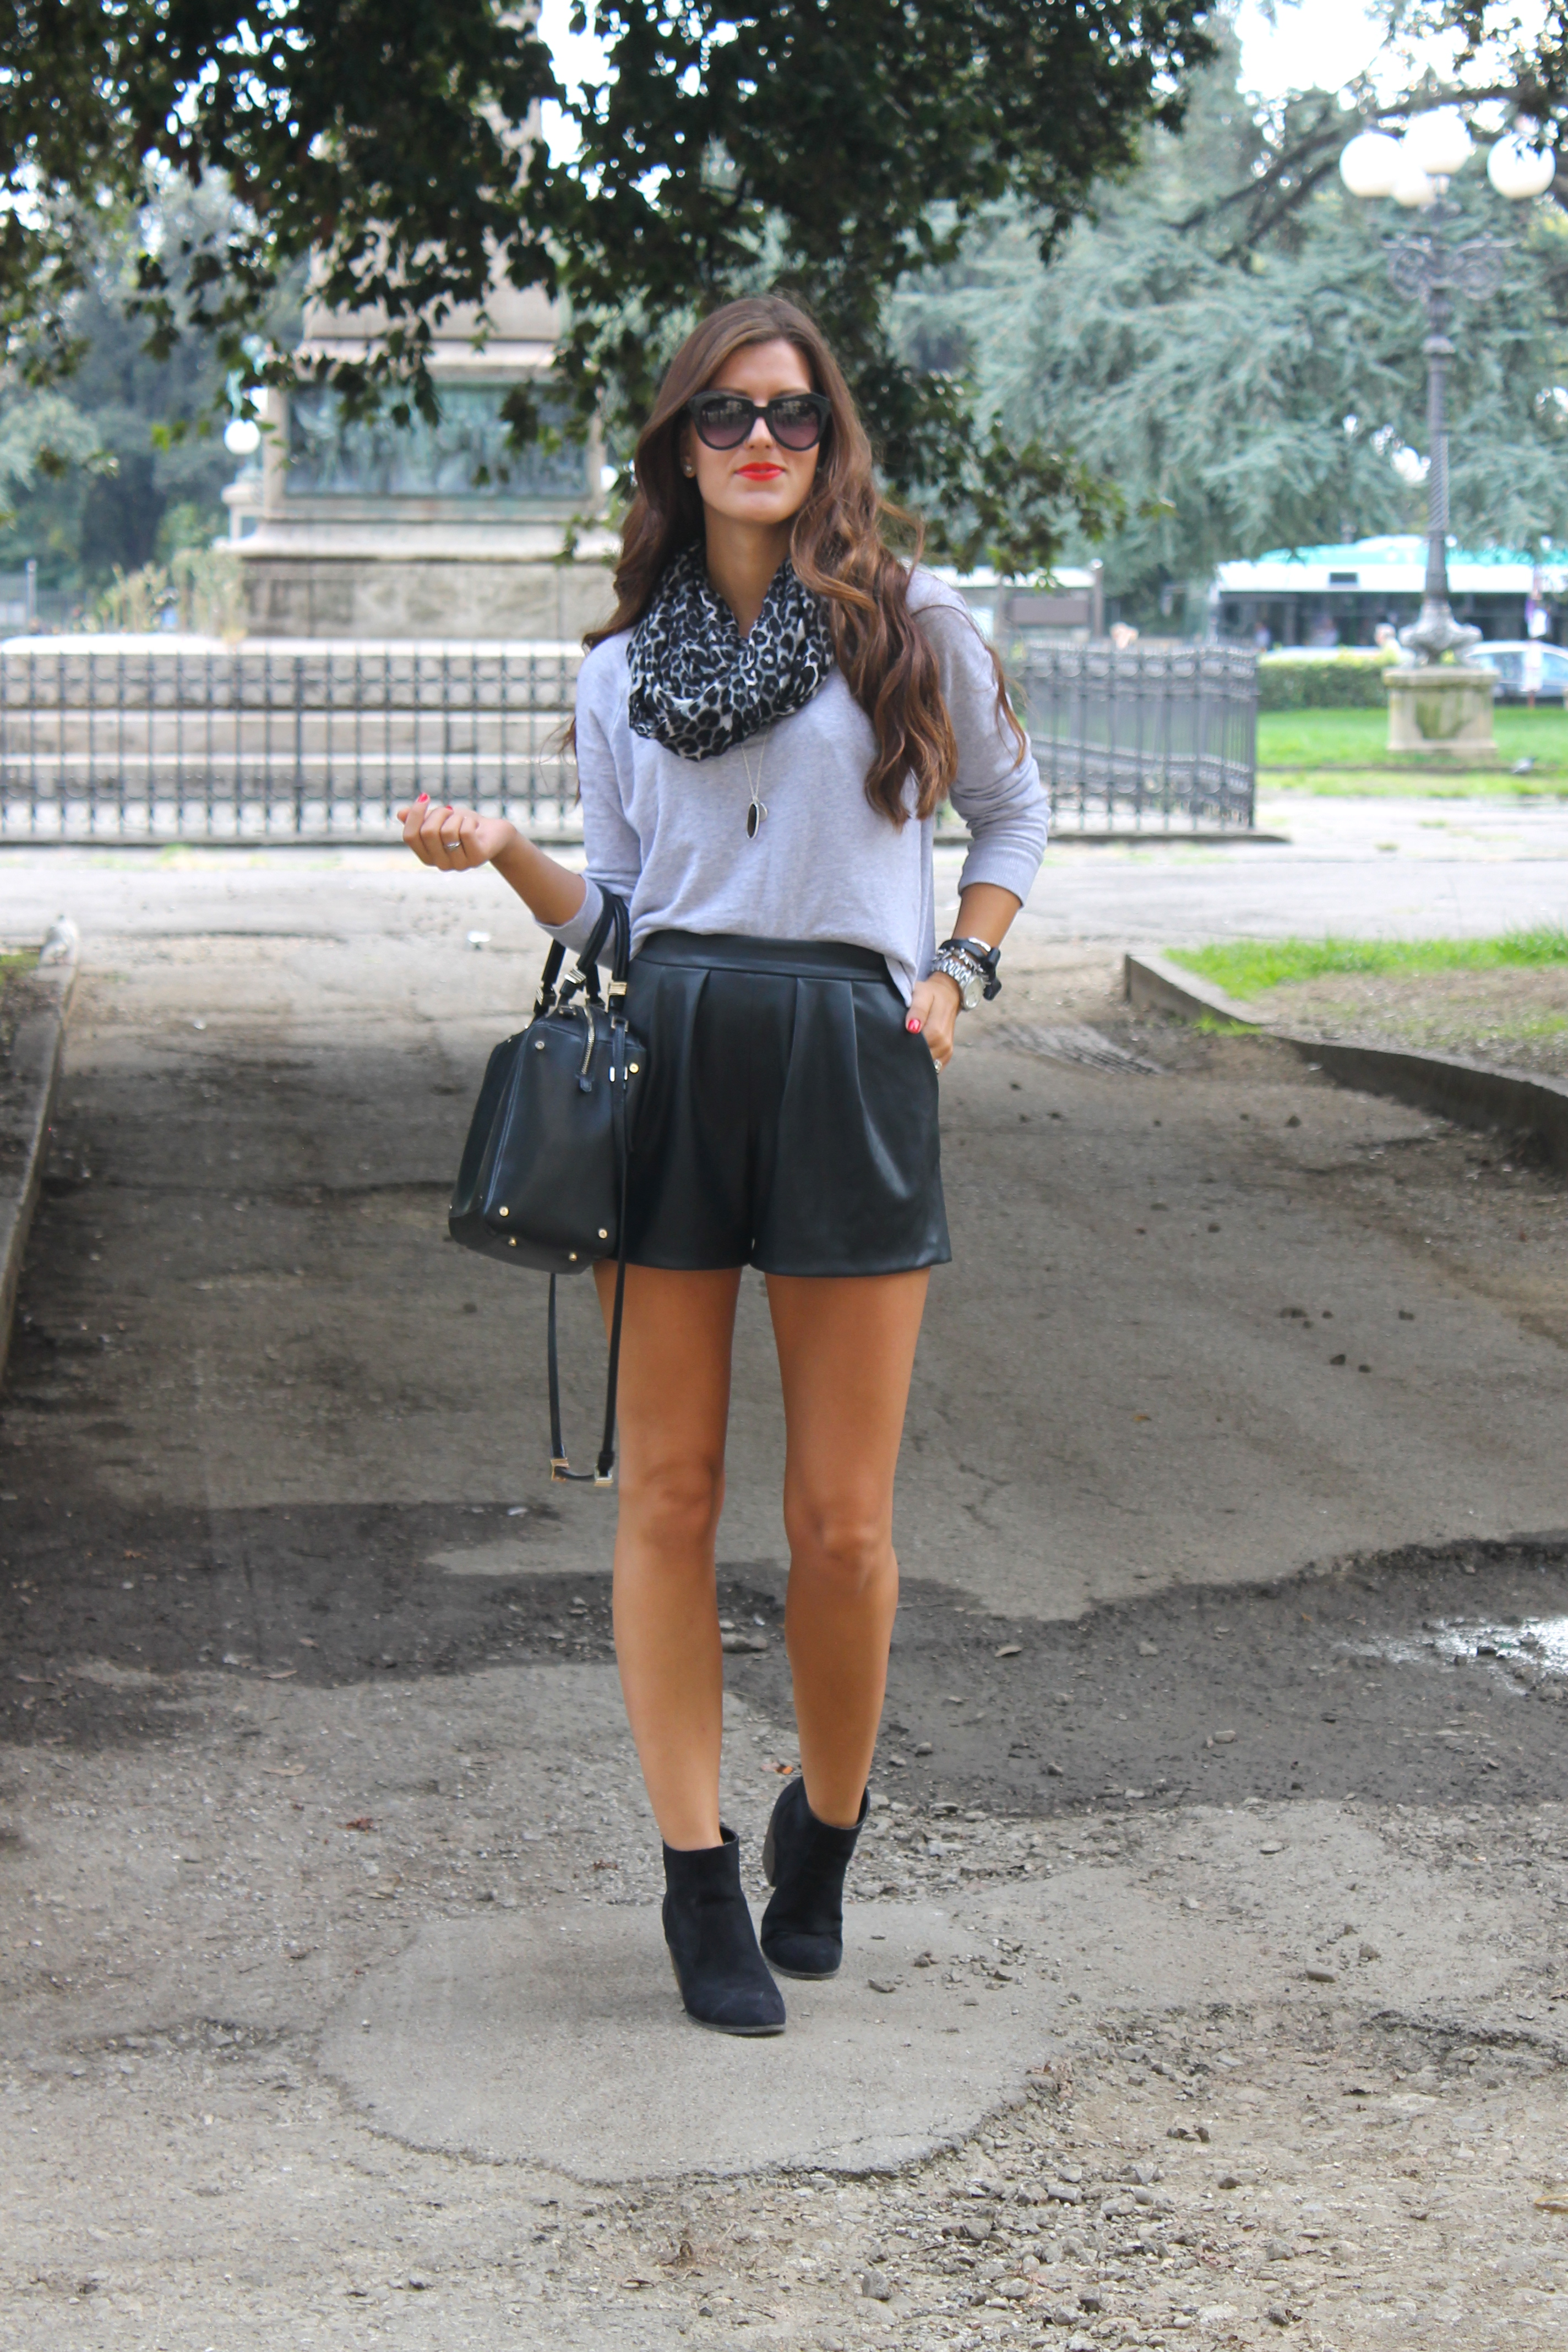 1000 Images About Style Short And Sweet On Pinterest Leather Shorts How To Wear And Black